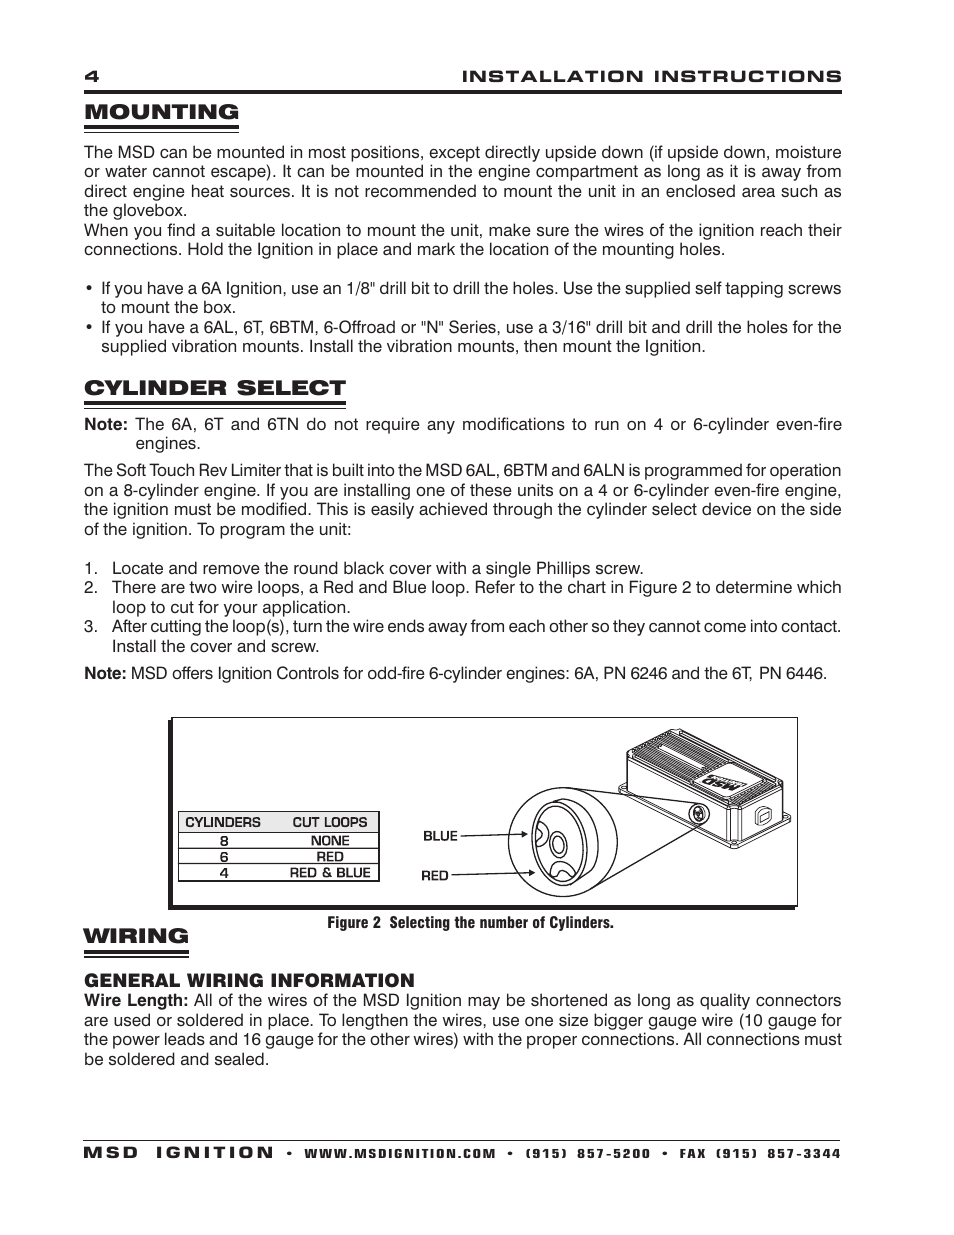 Msd Off Road Ignition Wiring Diagram Best Library 6430 6aln Control Installation User Manual Page 4 24